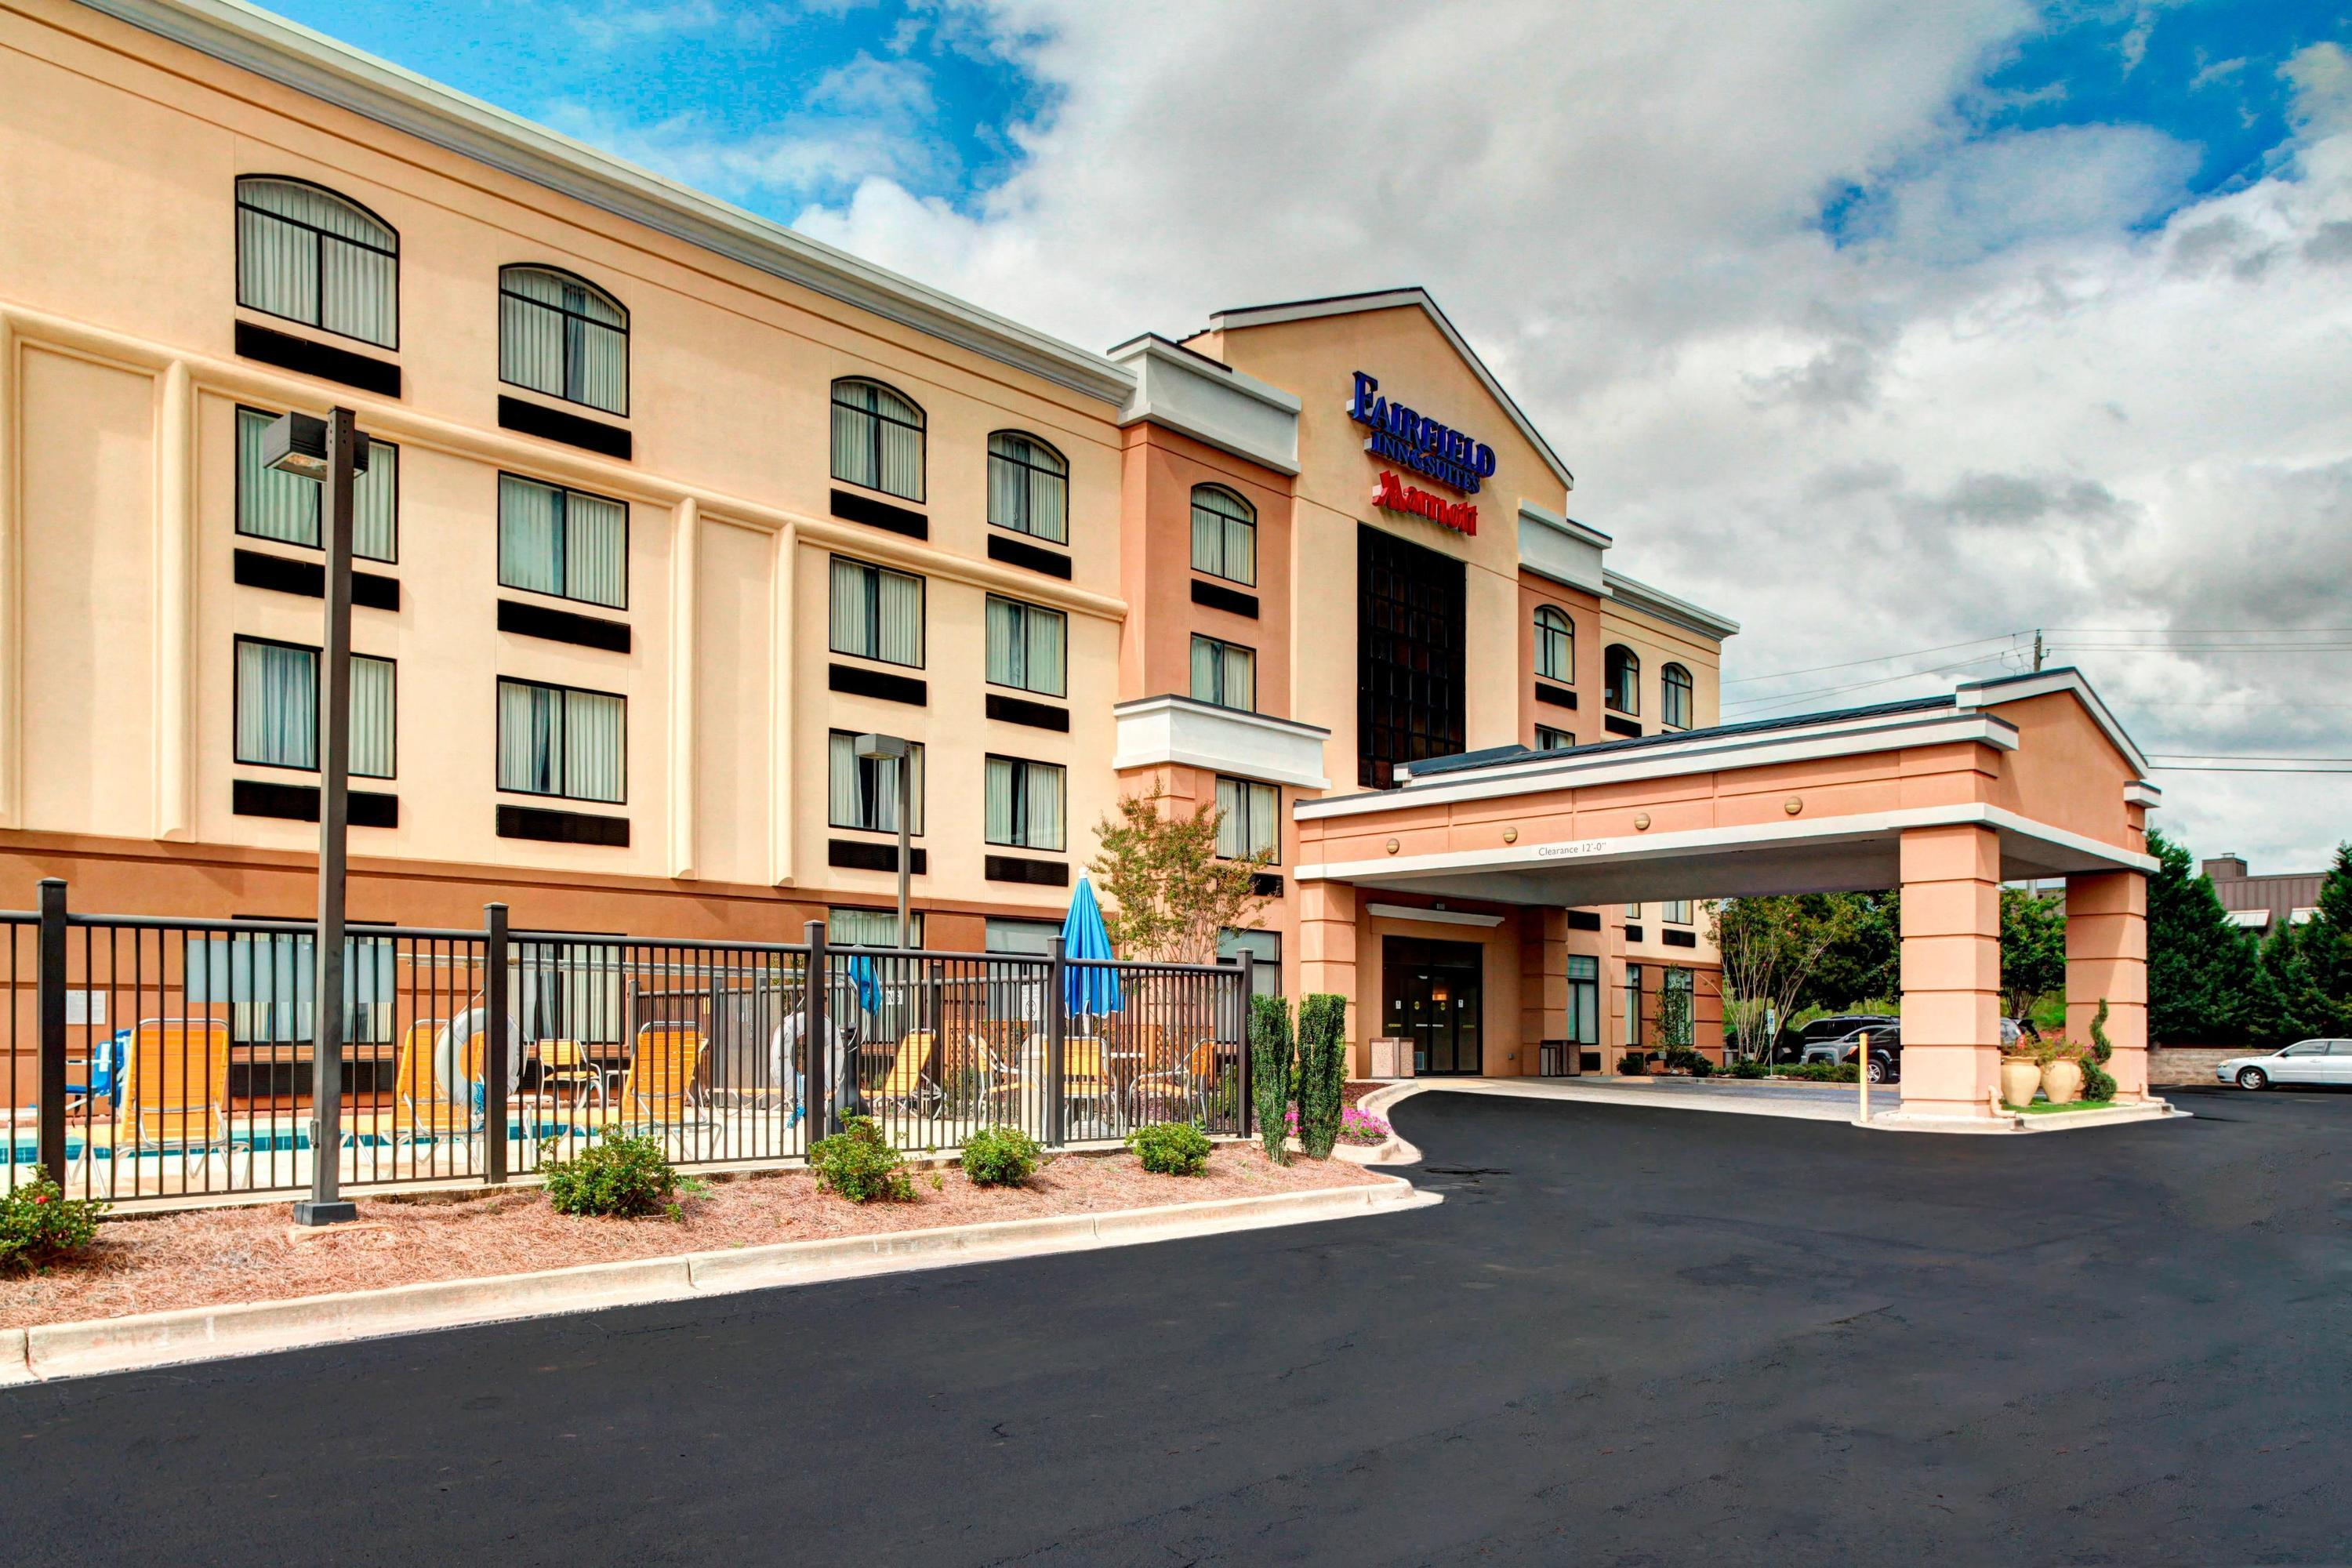 Fairfield Inn and Suites by Marriott Anniston Oxford